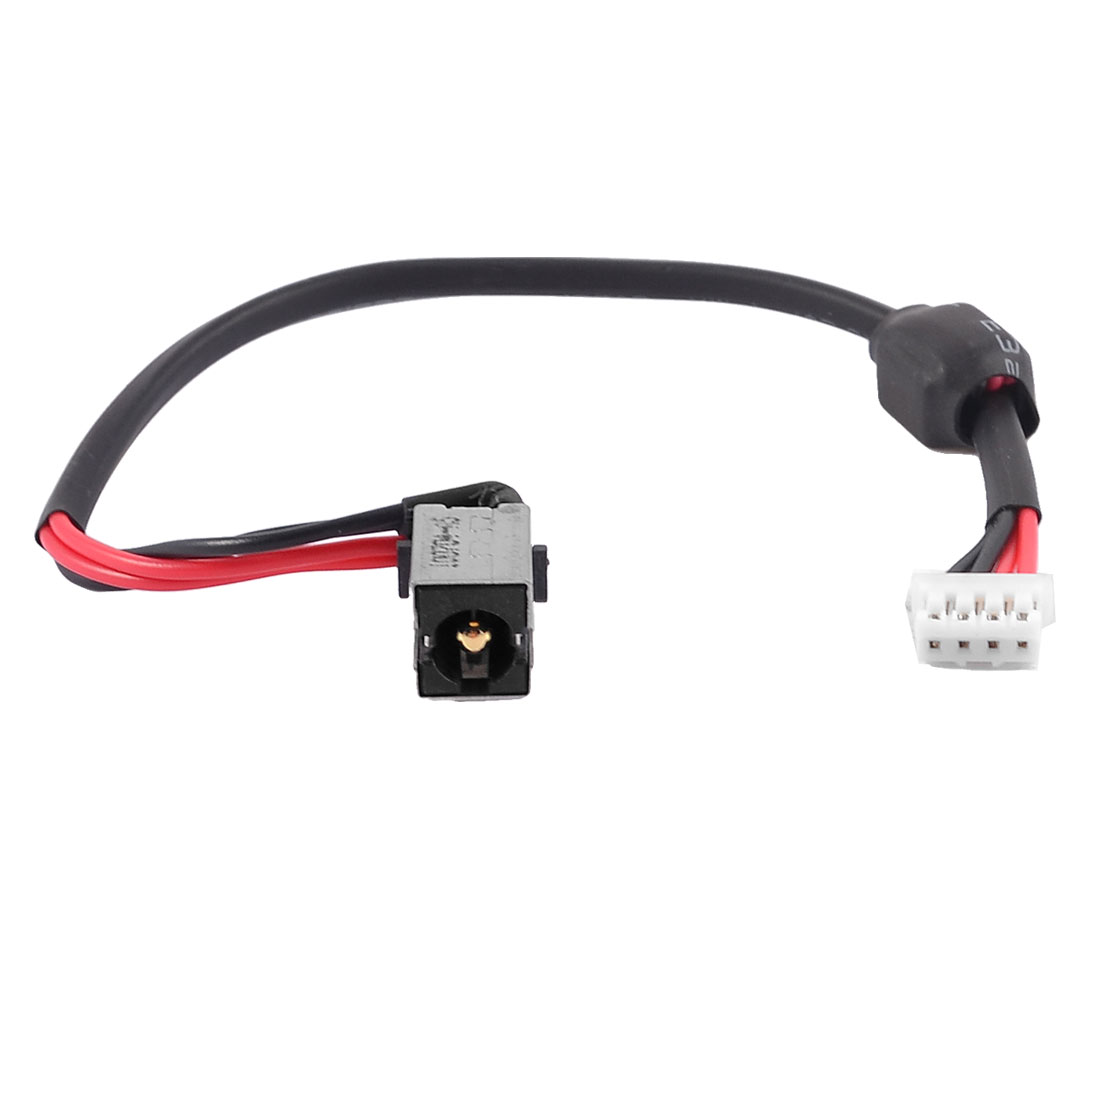 PJ423 2.5mm Center Pin DC Power Jack 4 Pins Cable for ASUS K43 K53E K53U K53T